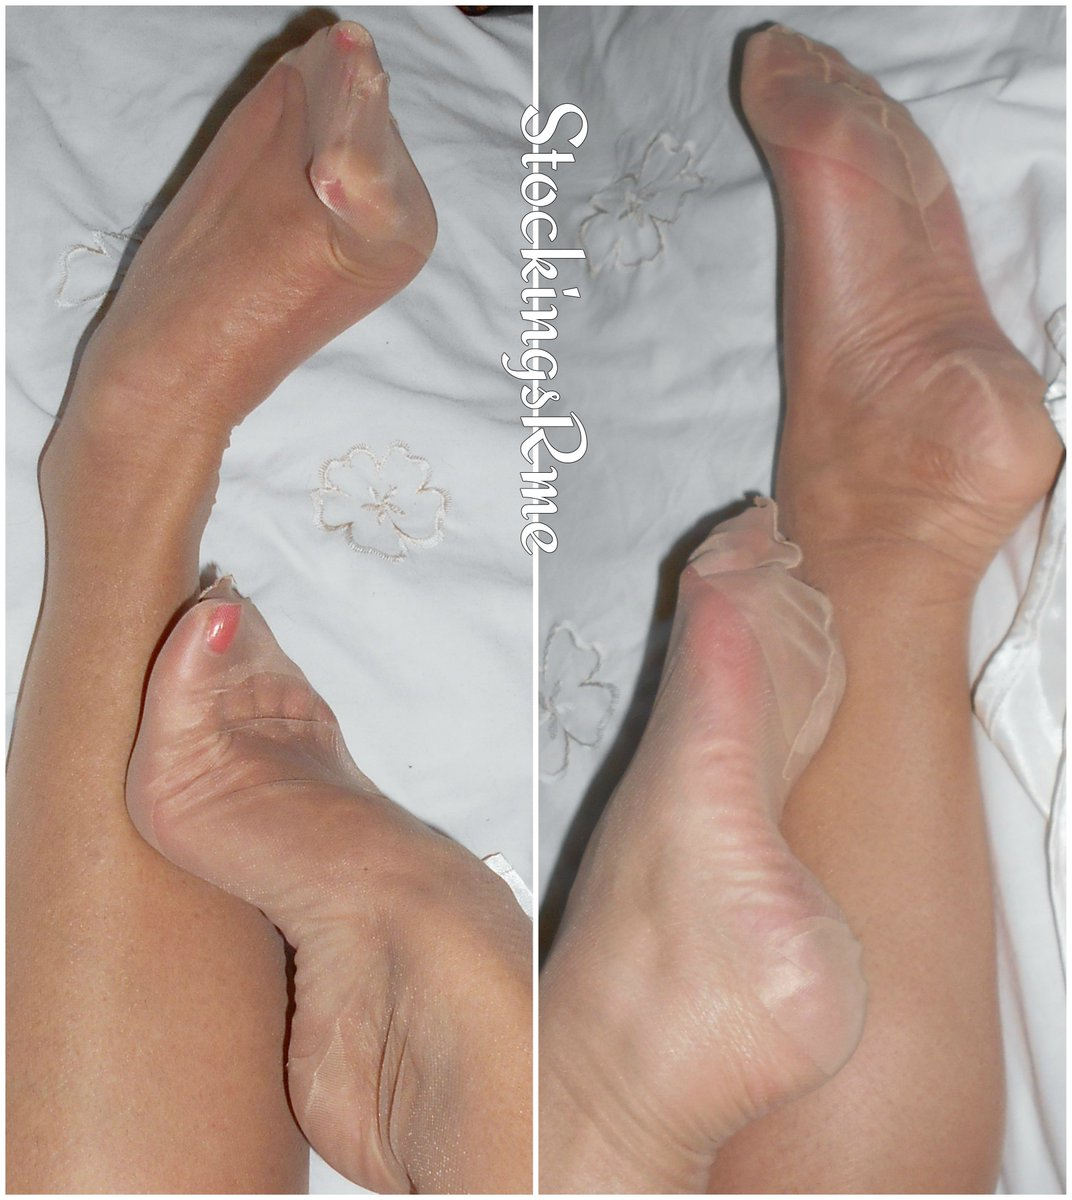 Shemale Pantyhose On Shemale